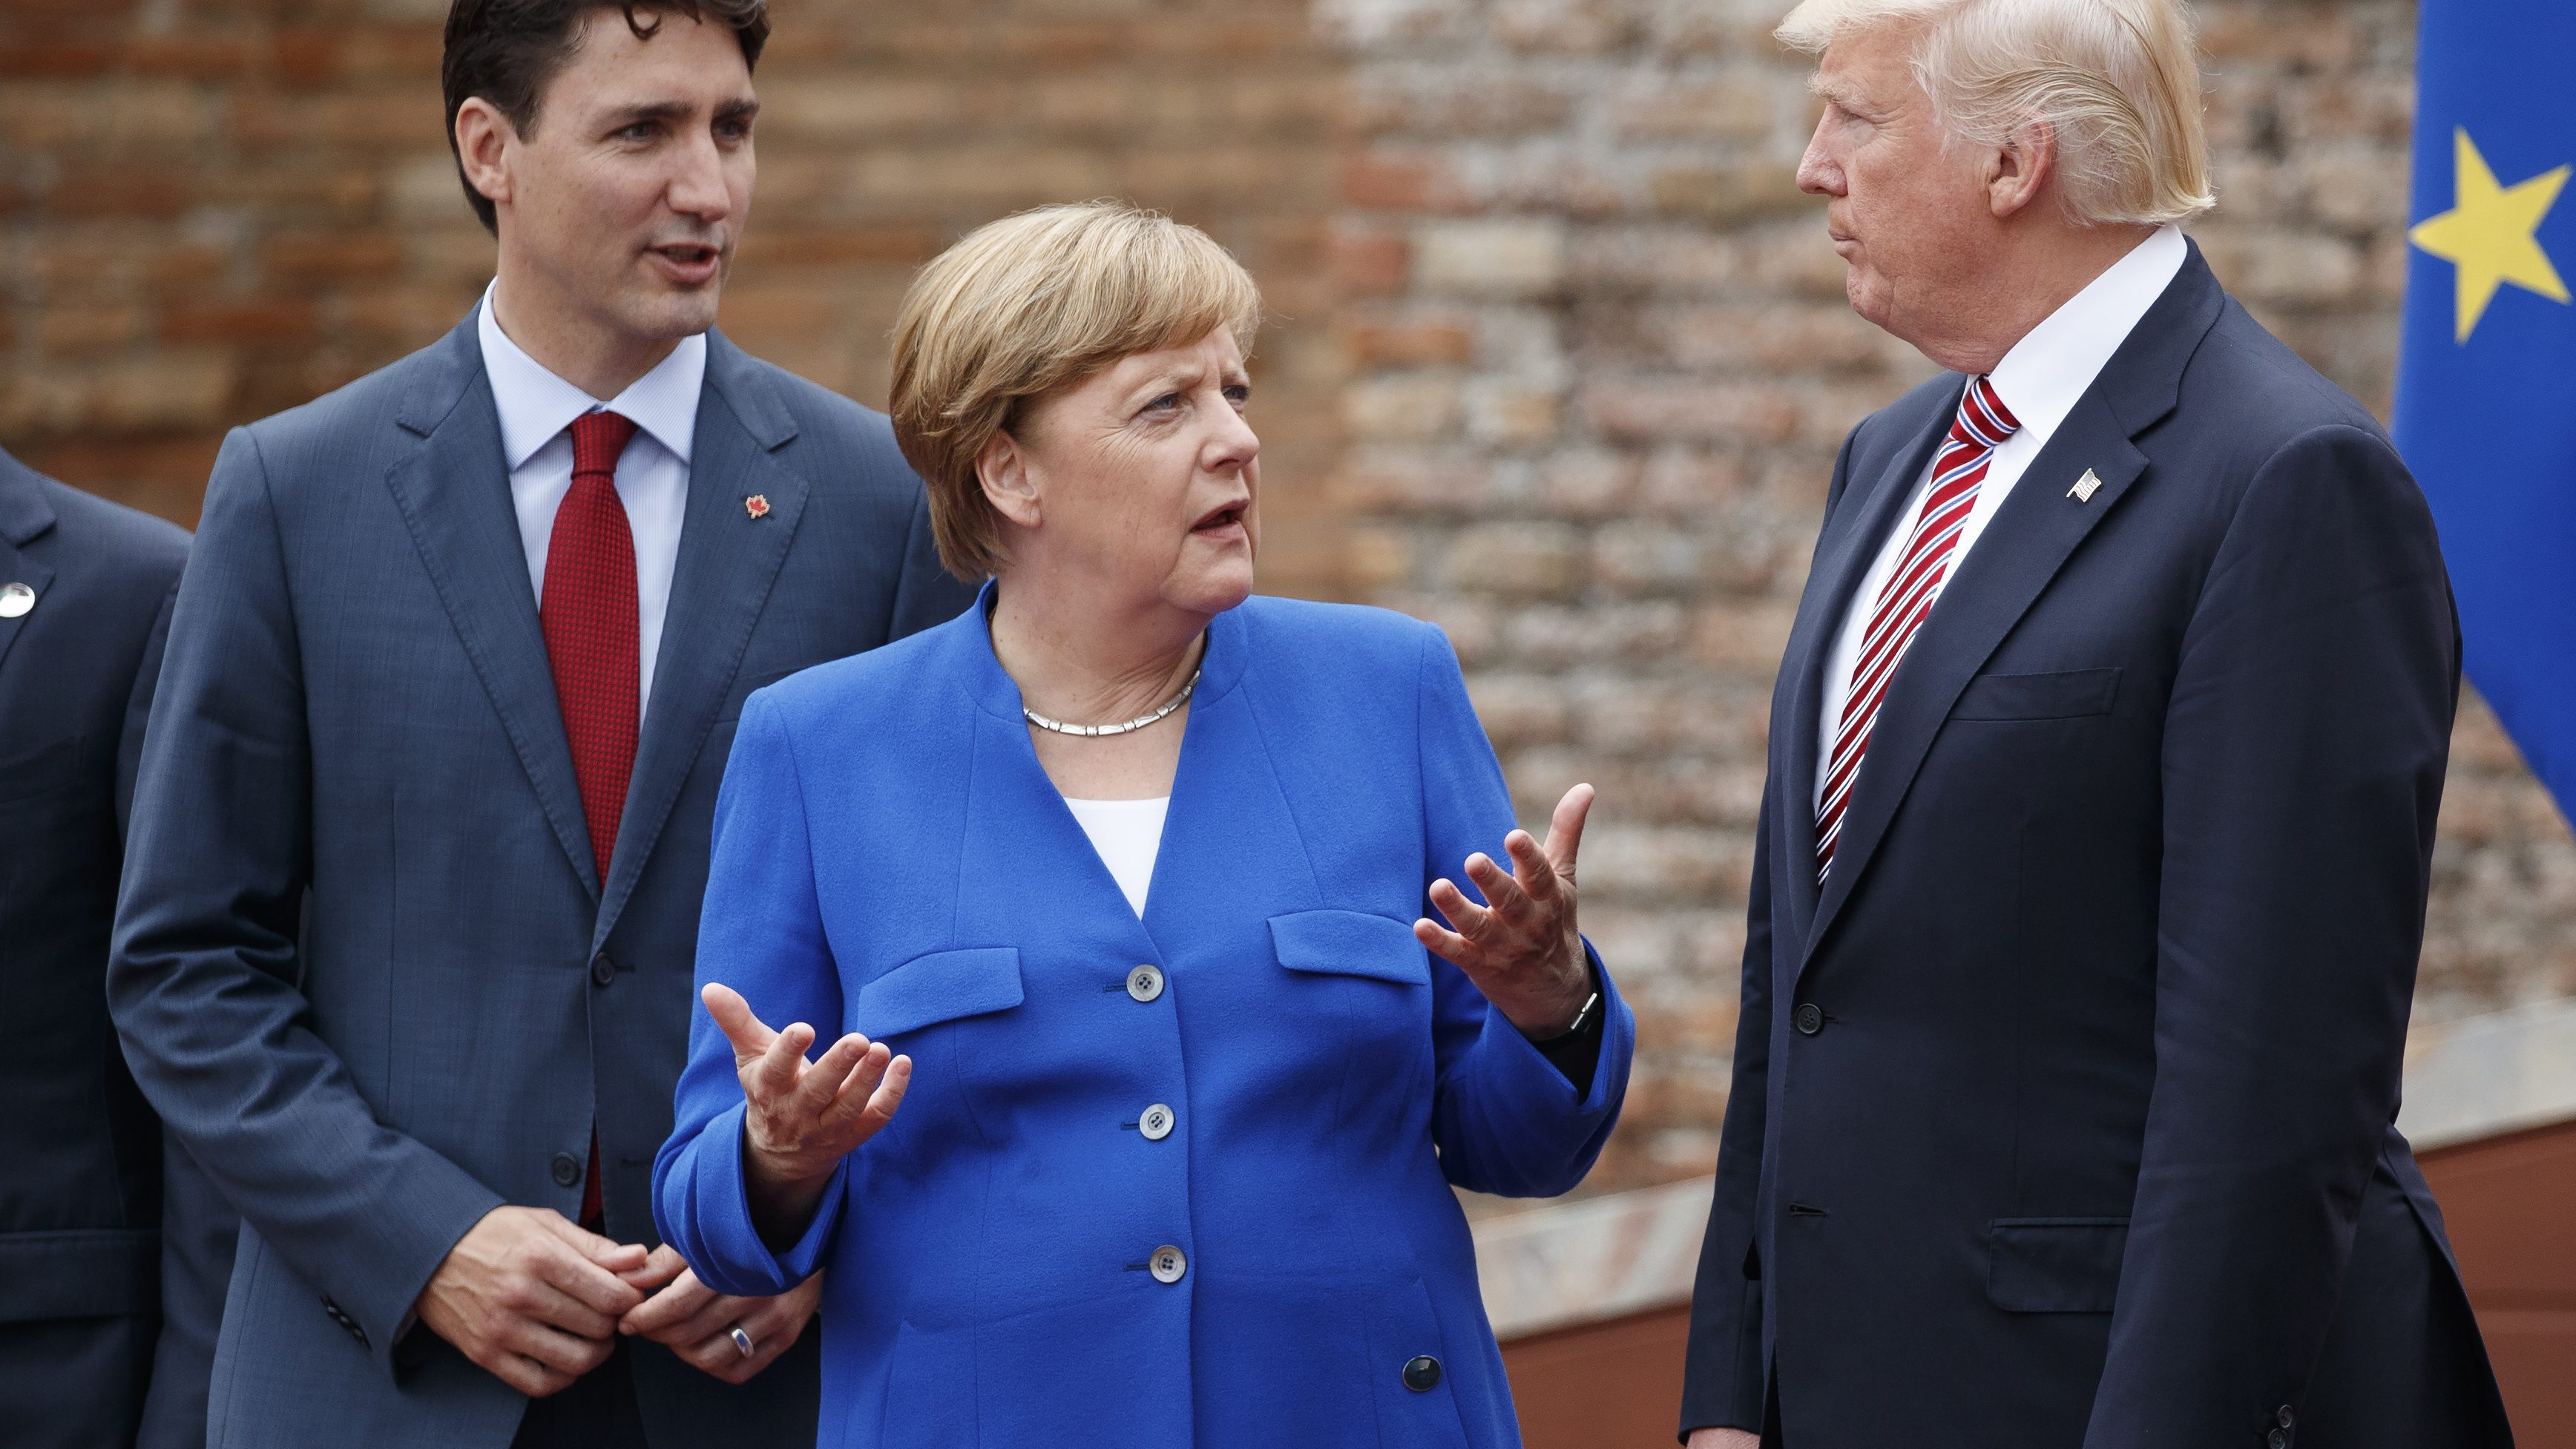 German Chancellor Angela Merkel, center, talks with Canadian Prime Minister Justin Trudeau, left, and President Donald Trump during a family photo with G7 leaders at the Ancient Greek Theater of Taormina during the G7 Summit, Friday, May 26, 2017, in Taormina, Italy. (AP Photo/Evan Vucci)